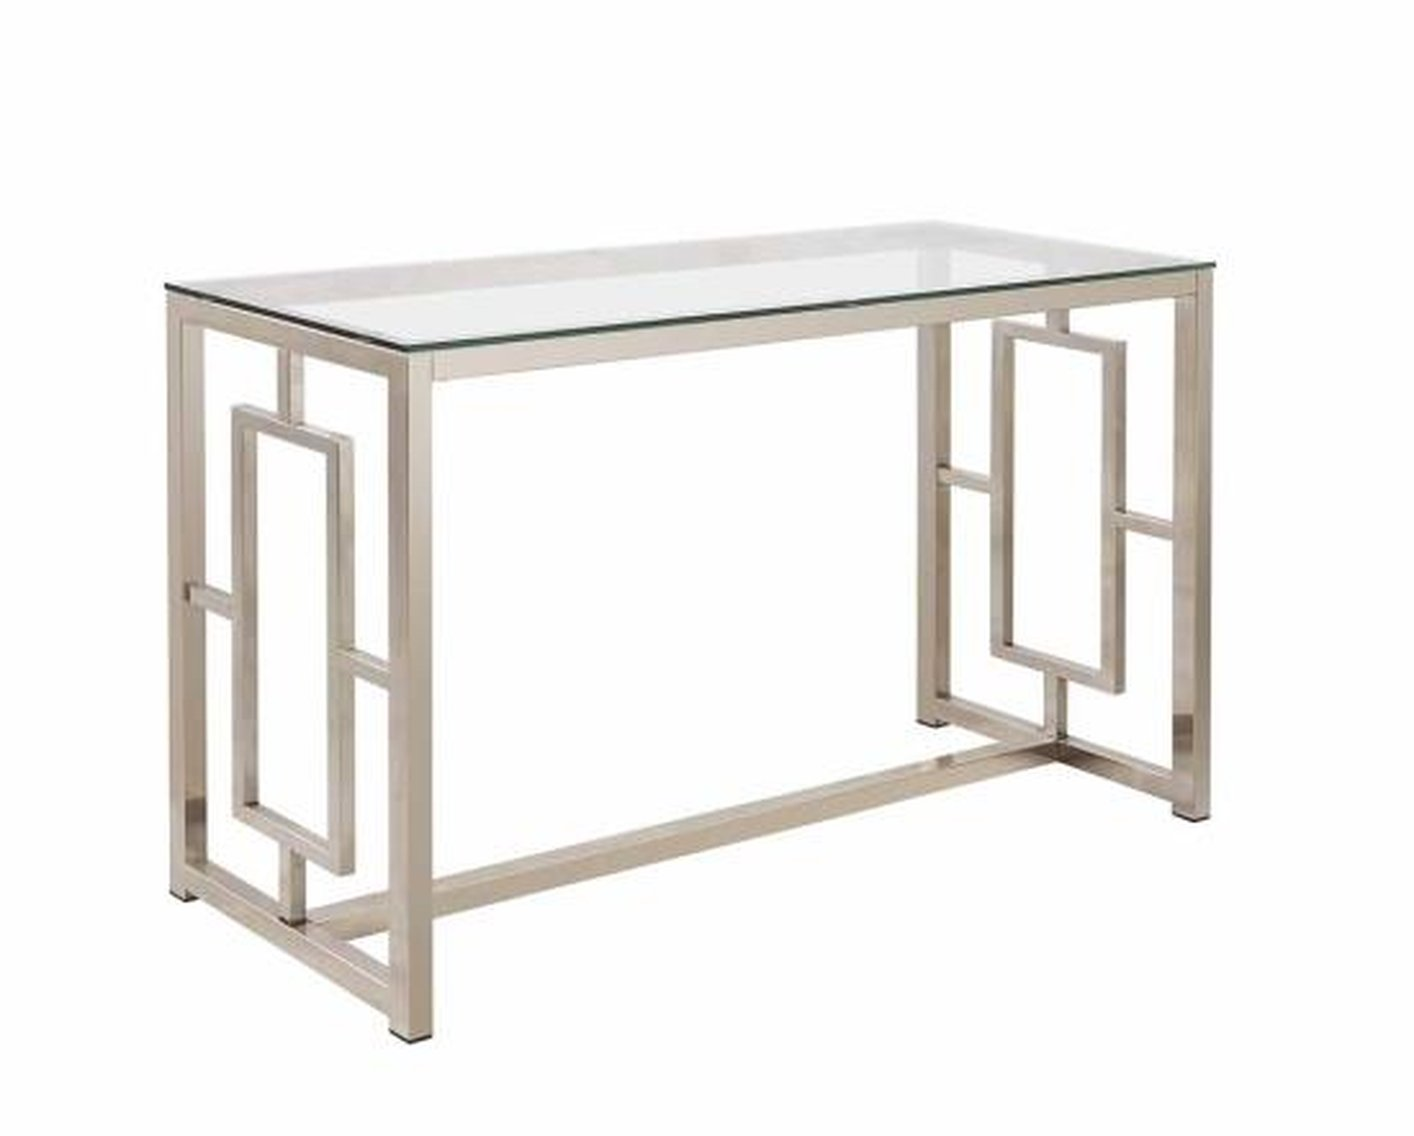 Glass Sofa Table silver glass sofa table - steal-a-sofa furniture outlet los angeles ca